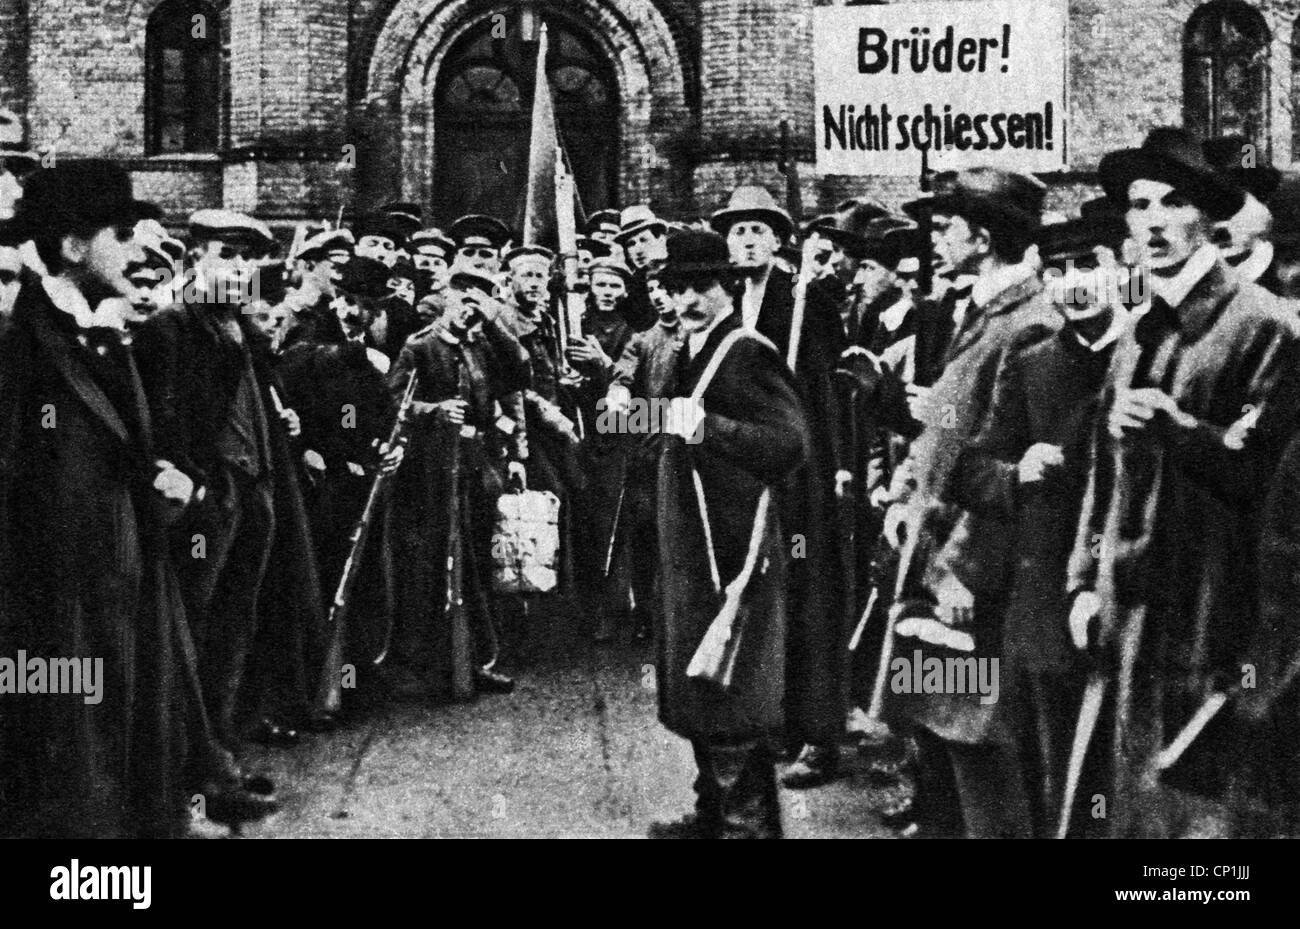 events, German Revolution 1918 - 1919, revolutionists in front of Berlin barracks, 9.11.1918, Germany, Prussia, - Stock Image